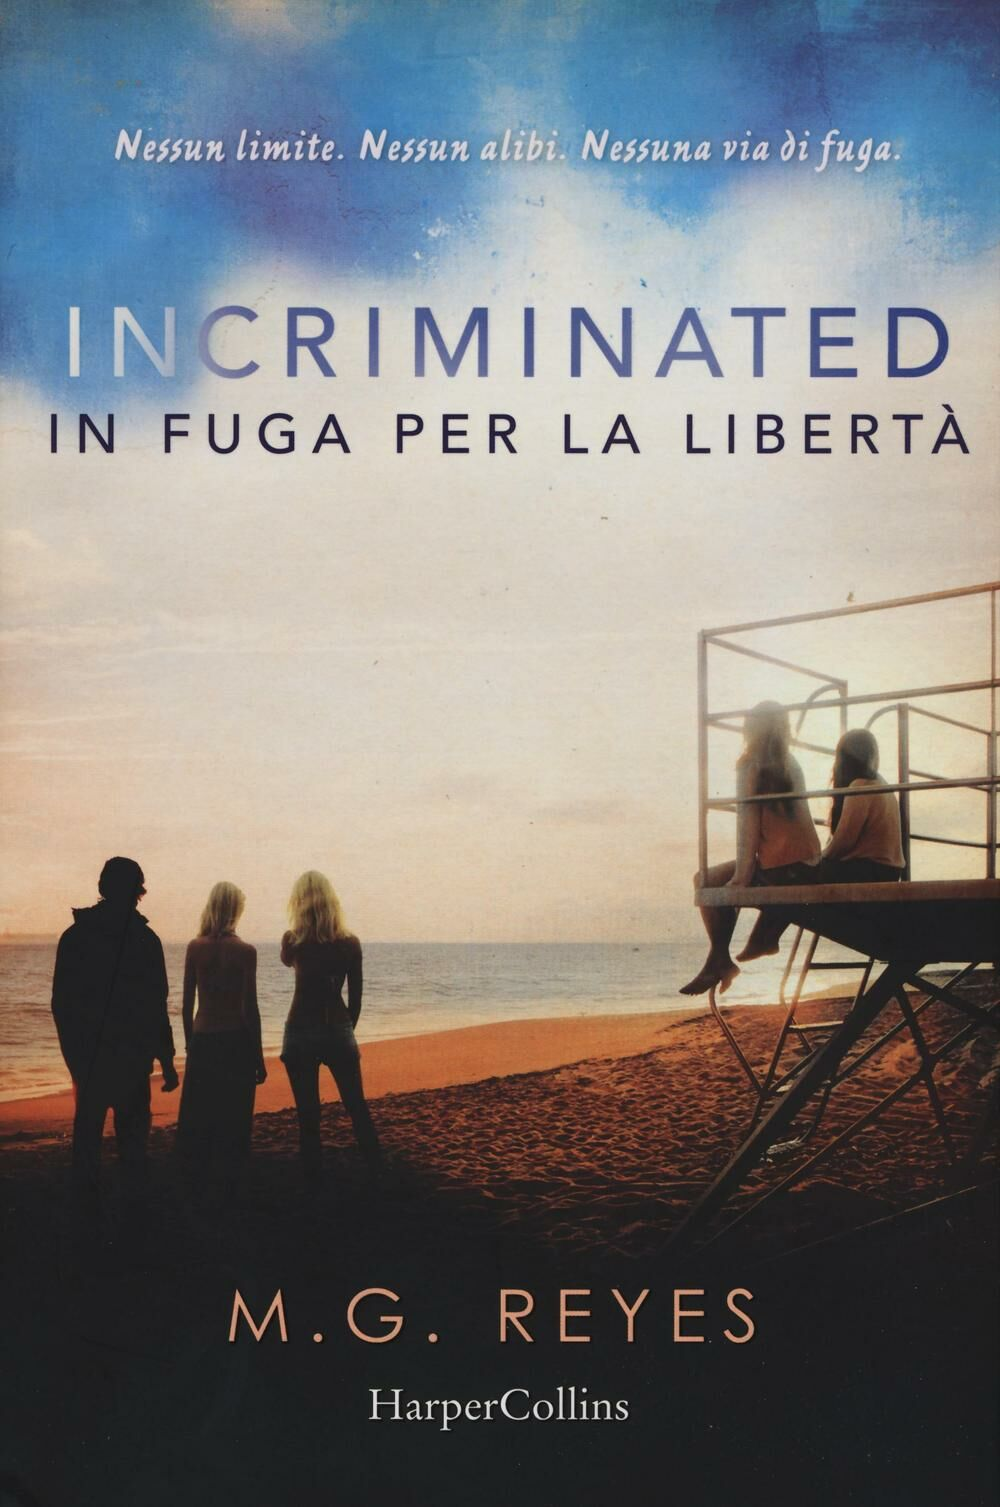 Incriminated. In fuga per la libertà